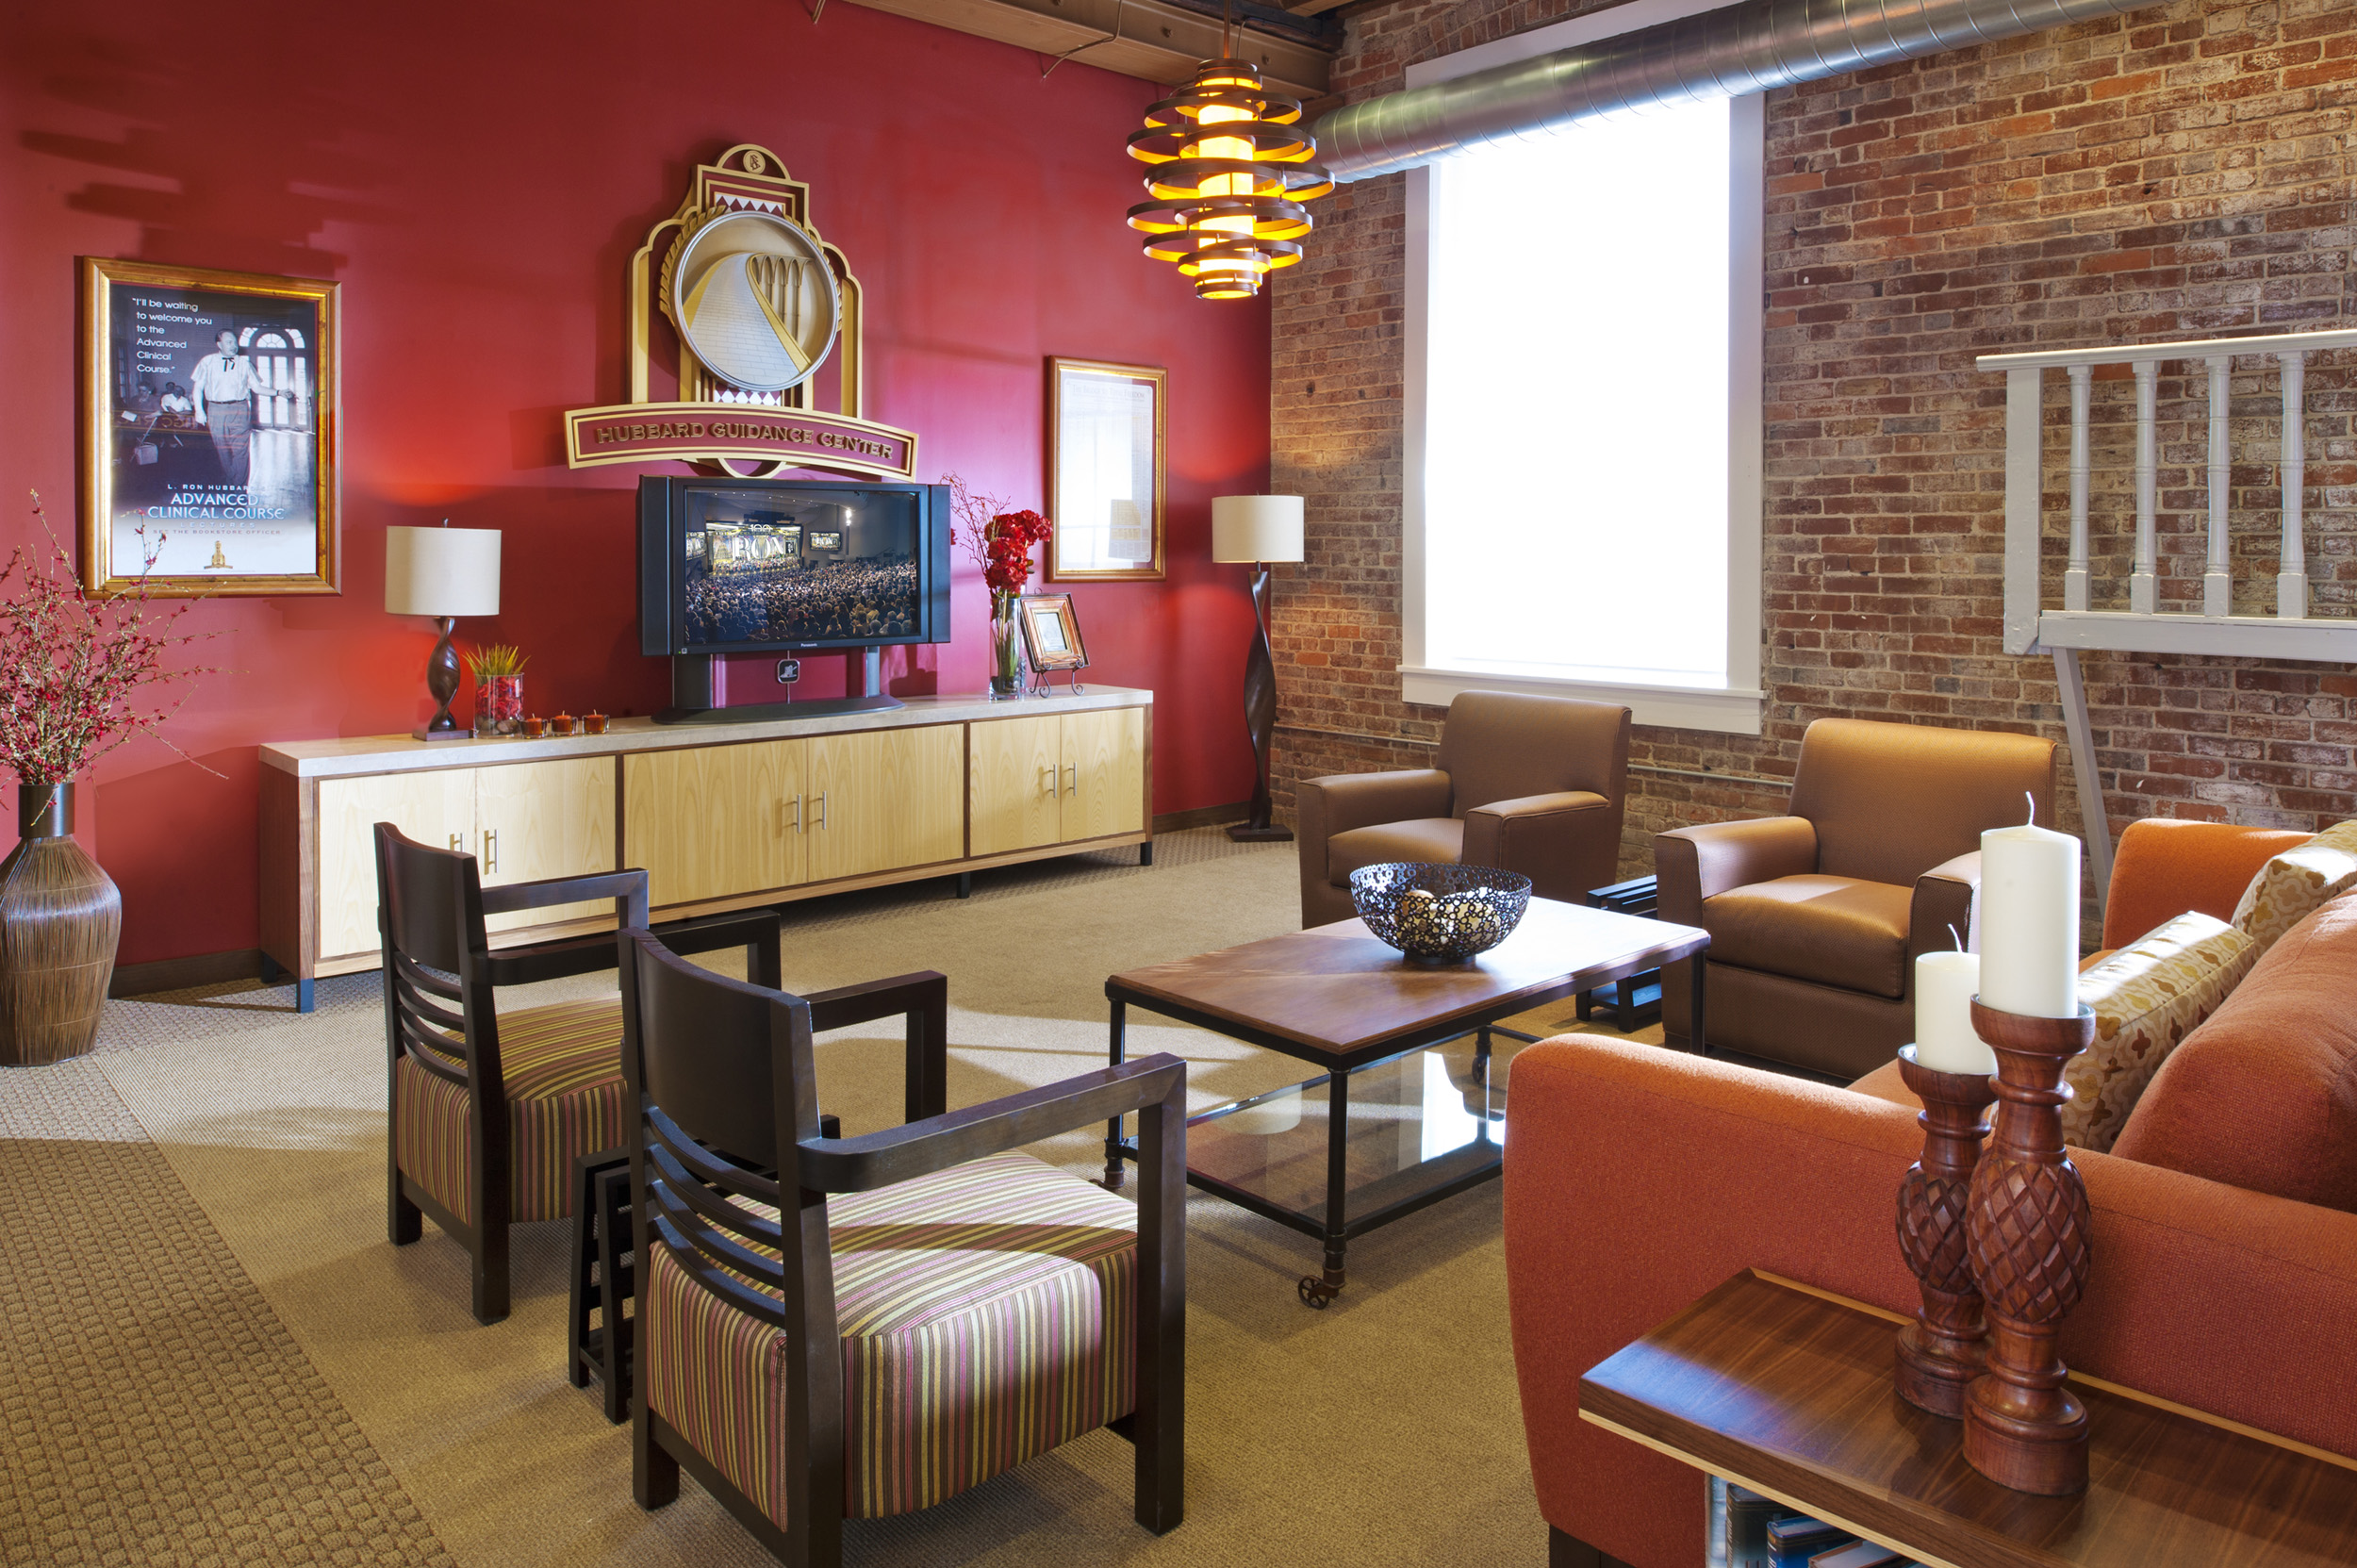 church of scientology of tampa expands into new historic landmark ybor square home